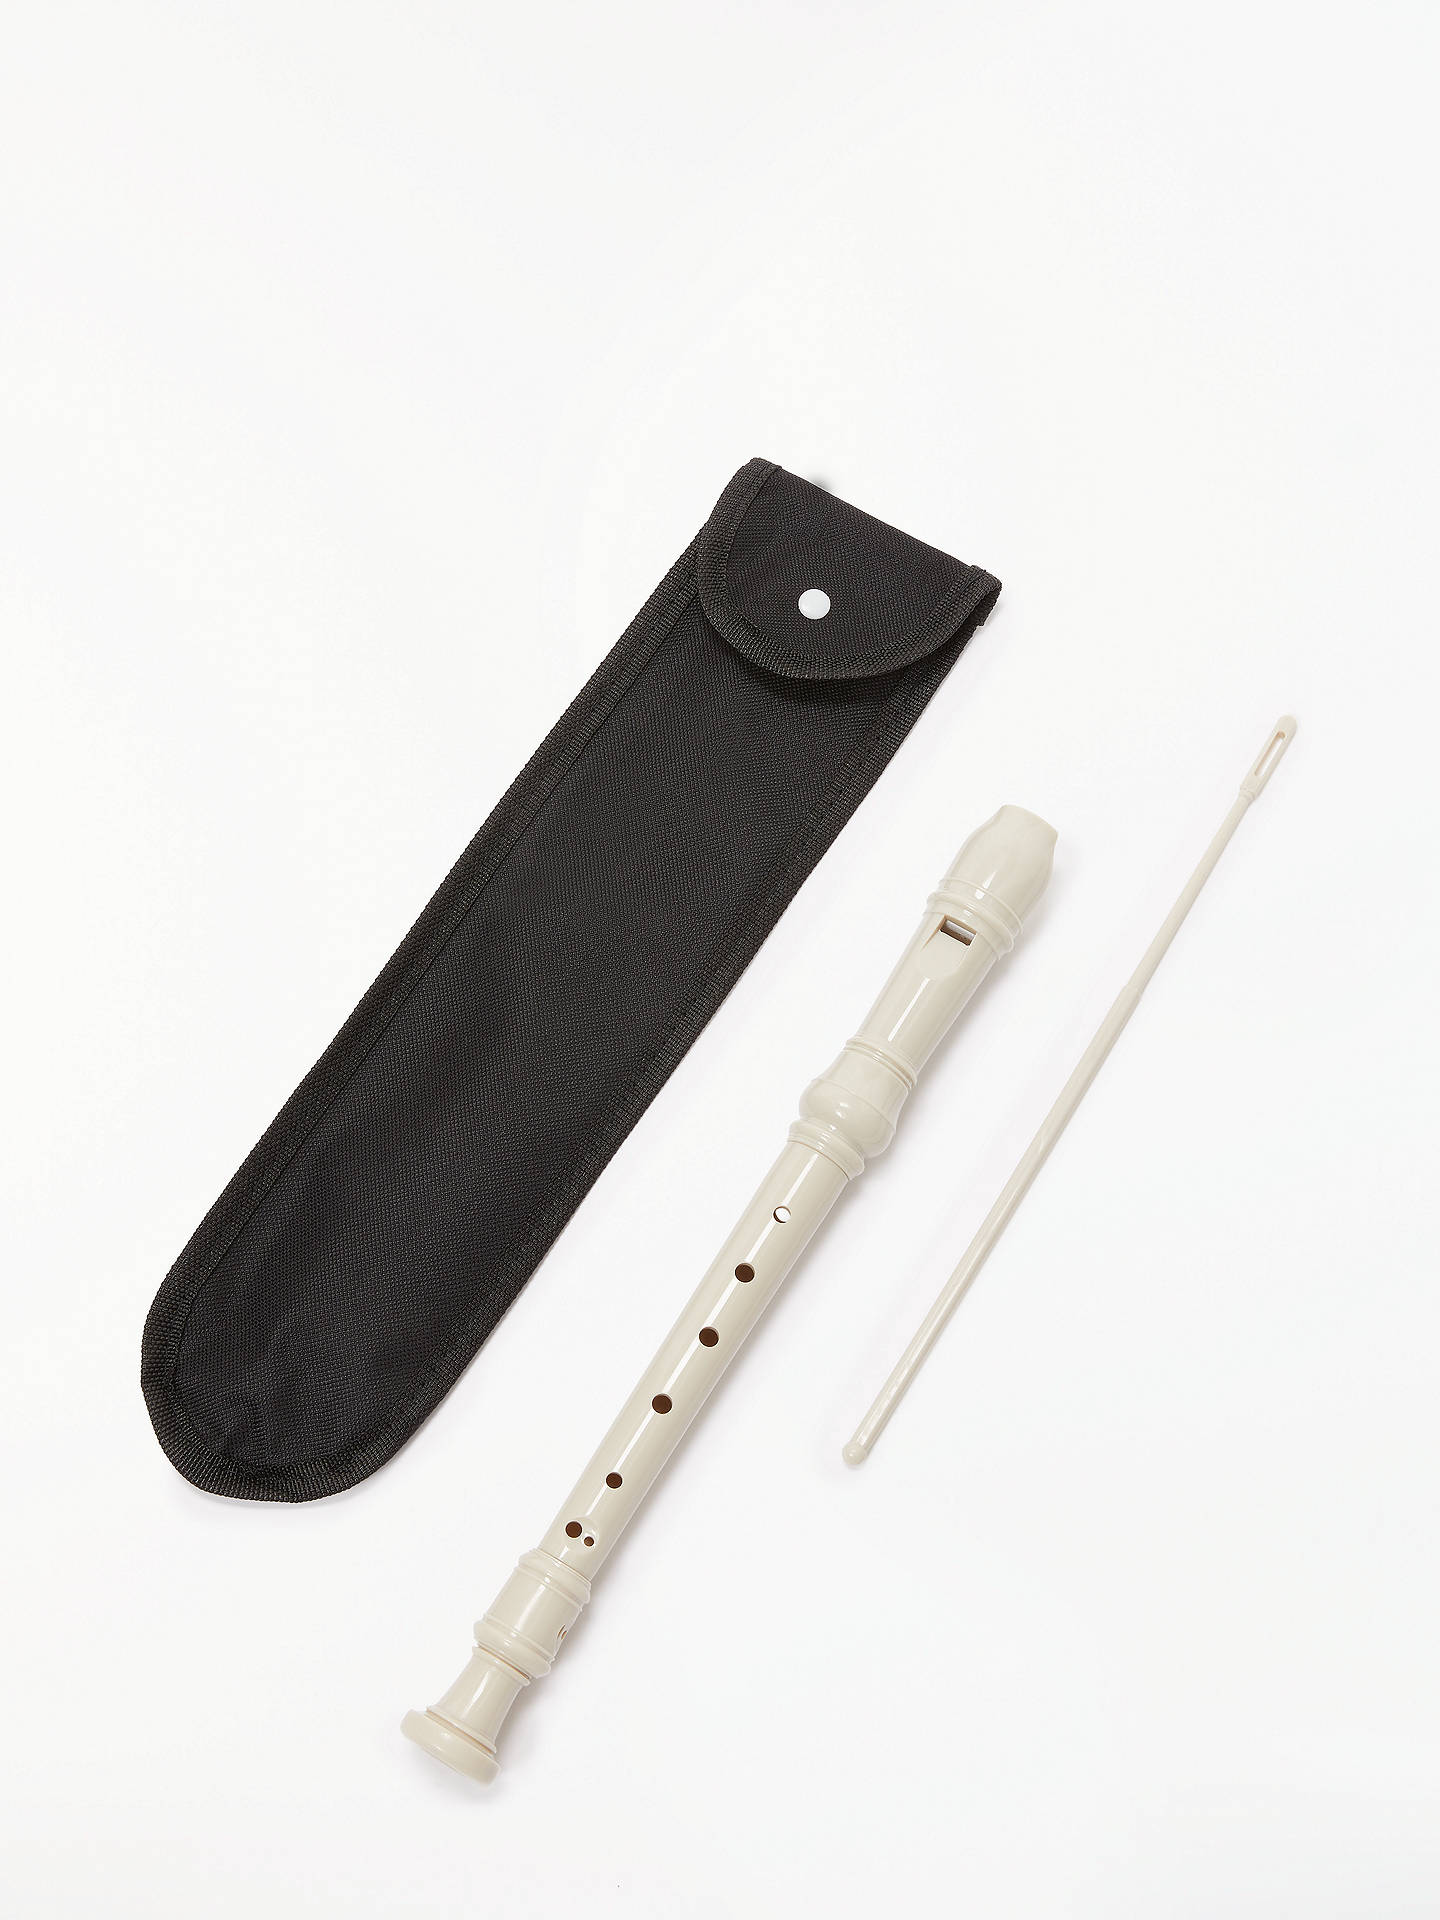 BuyJohn Lewis & Partners Recorder In Bag Online at johnlewis.com